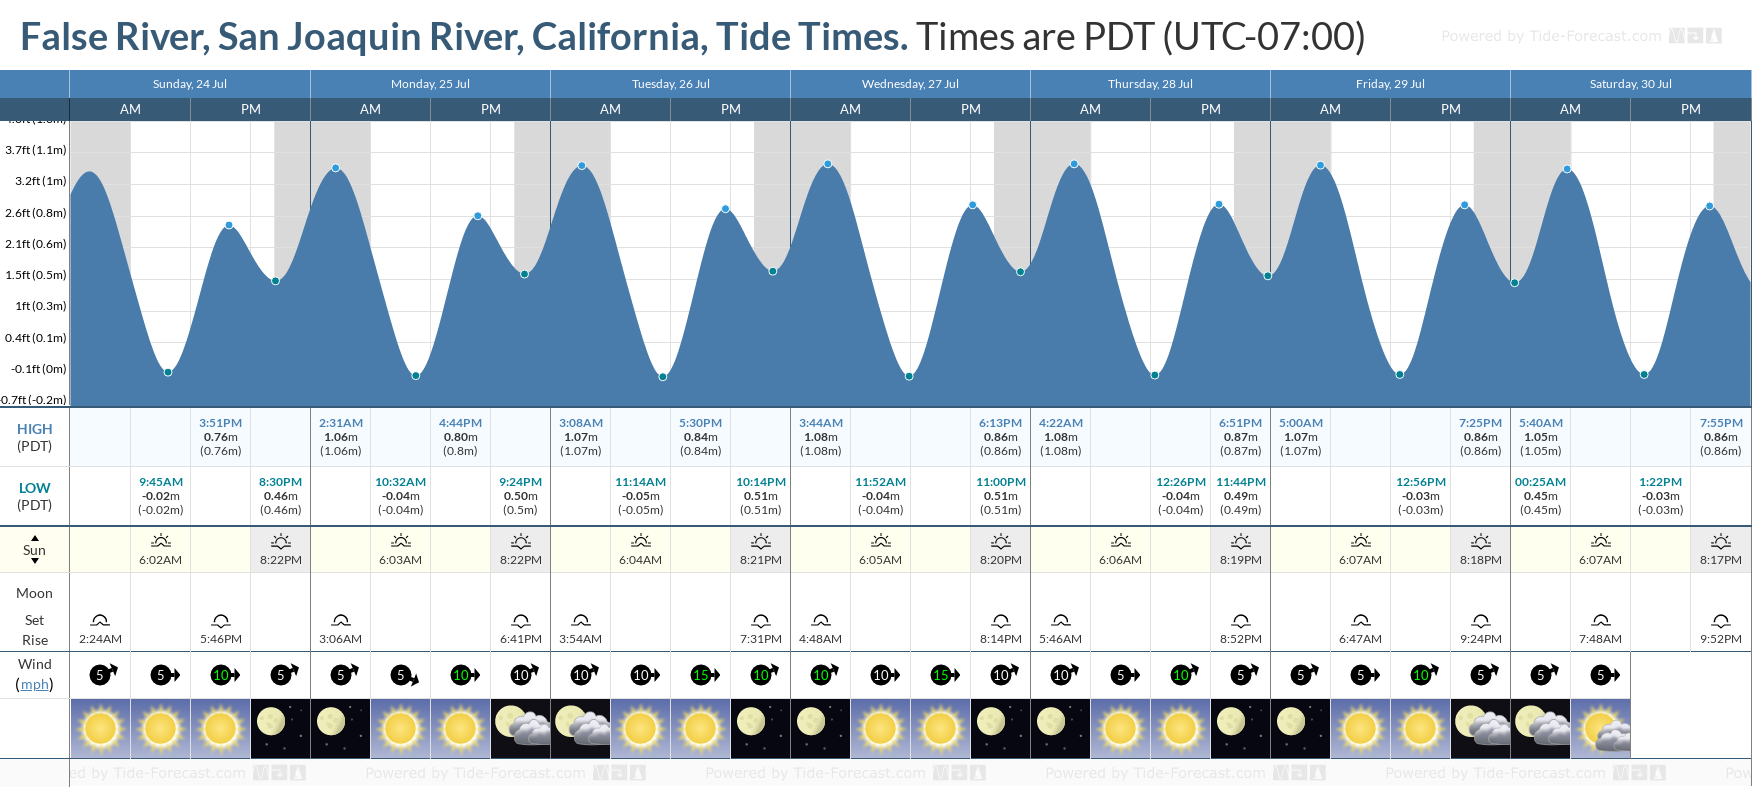 False River, San Joaquin River, California Tide Chart including high and low tide tide times for the next 7 days